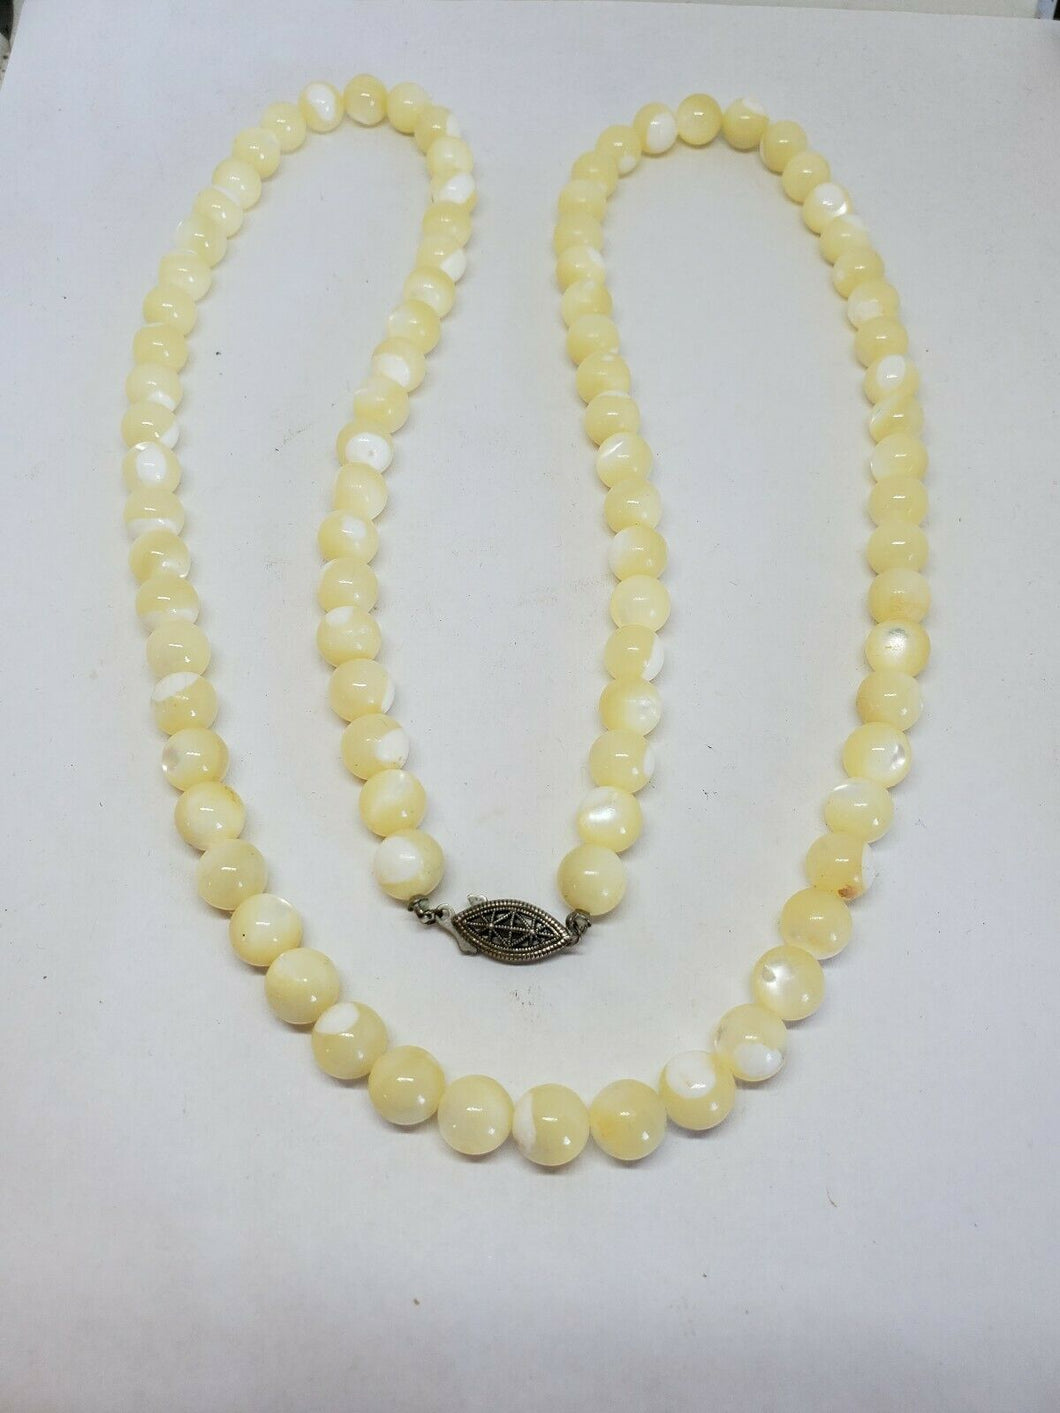 Vintage Sterling Silver Mother Of Pearl Bead Strand Necklace 32